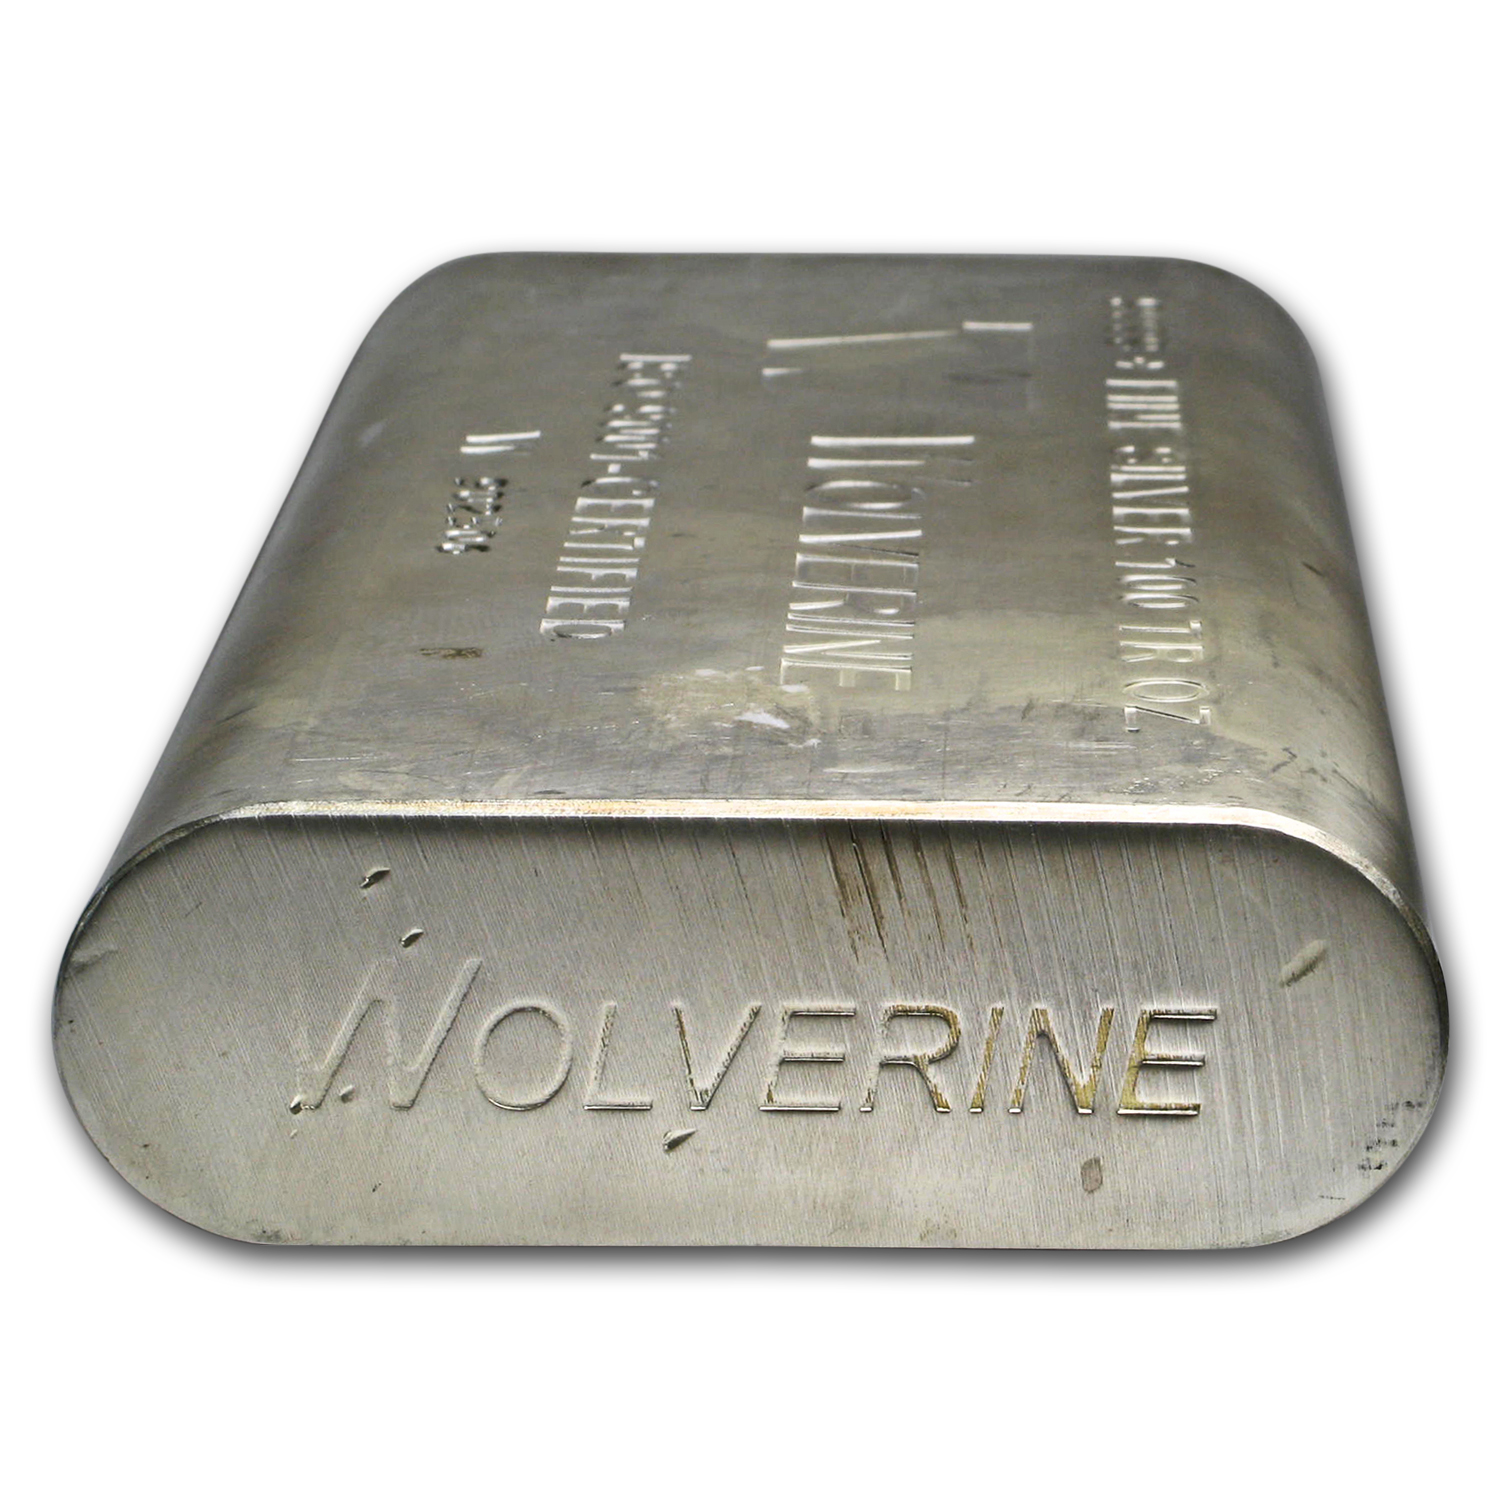 100 oz Silver Bars - Wolverine (Extruded)